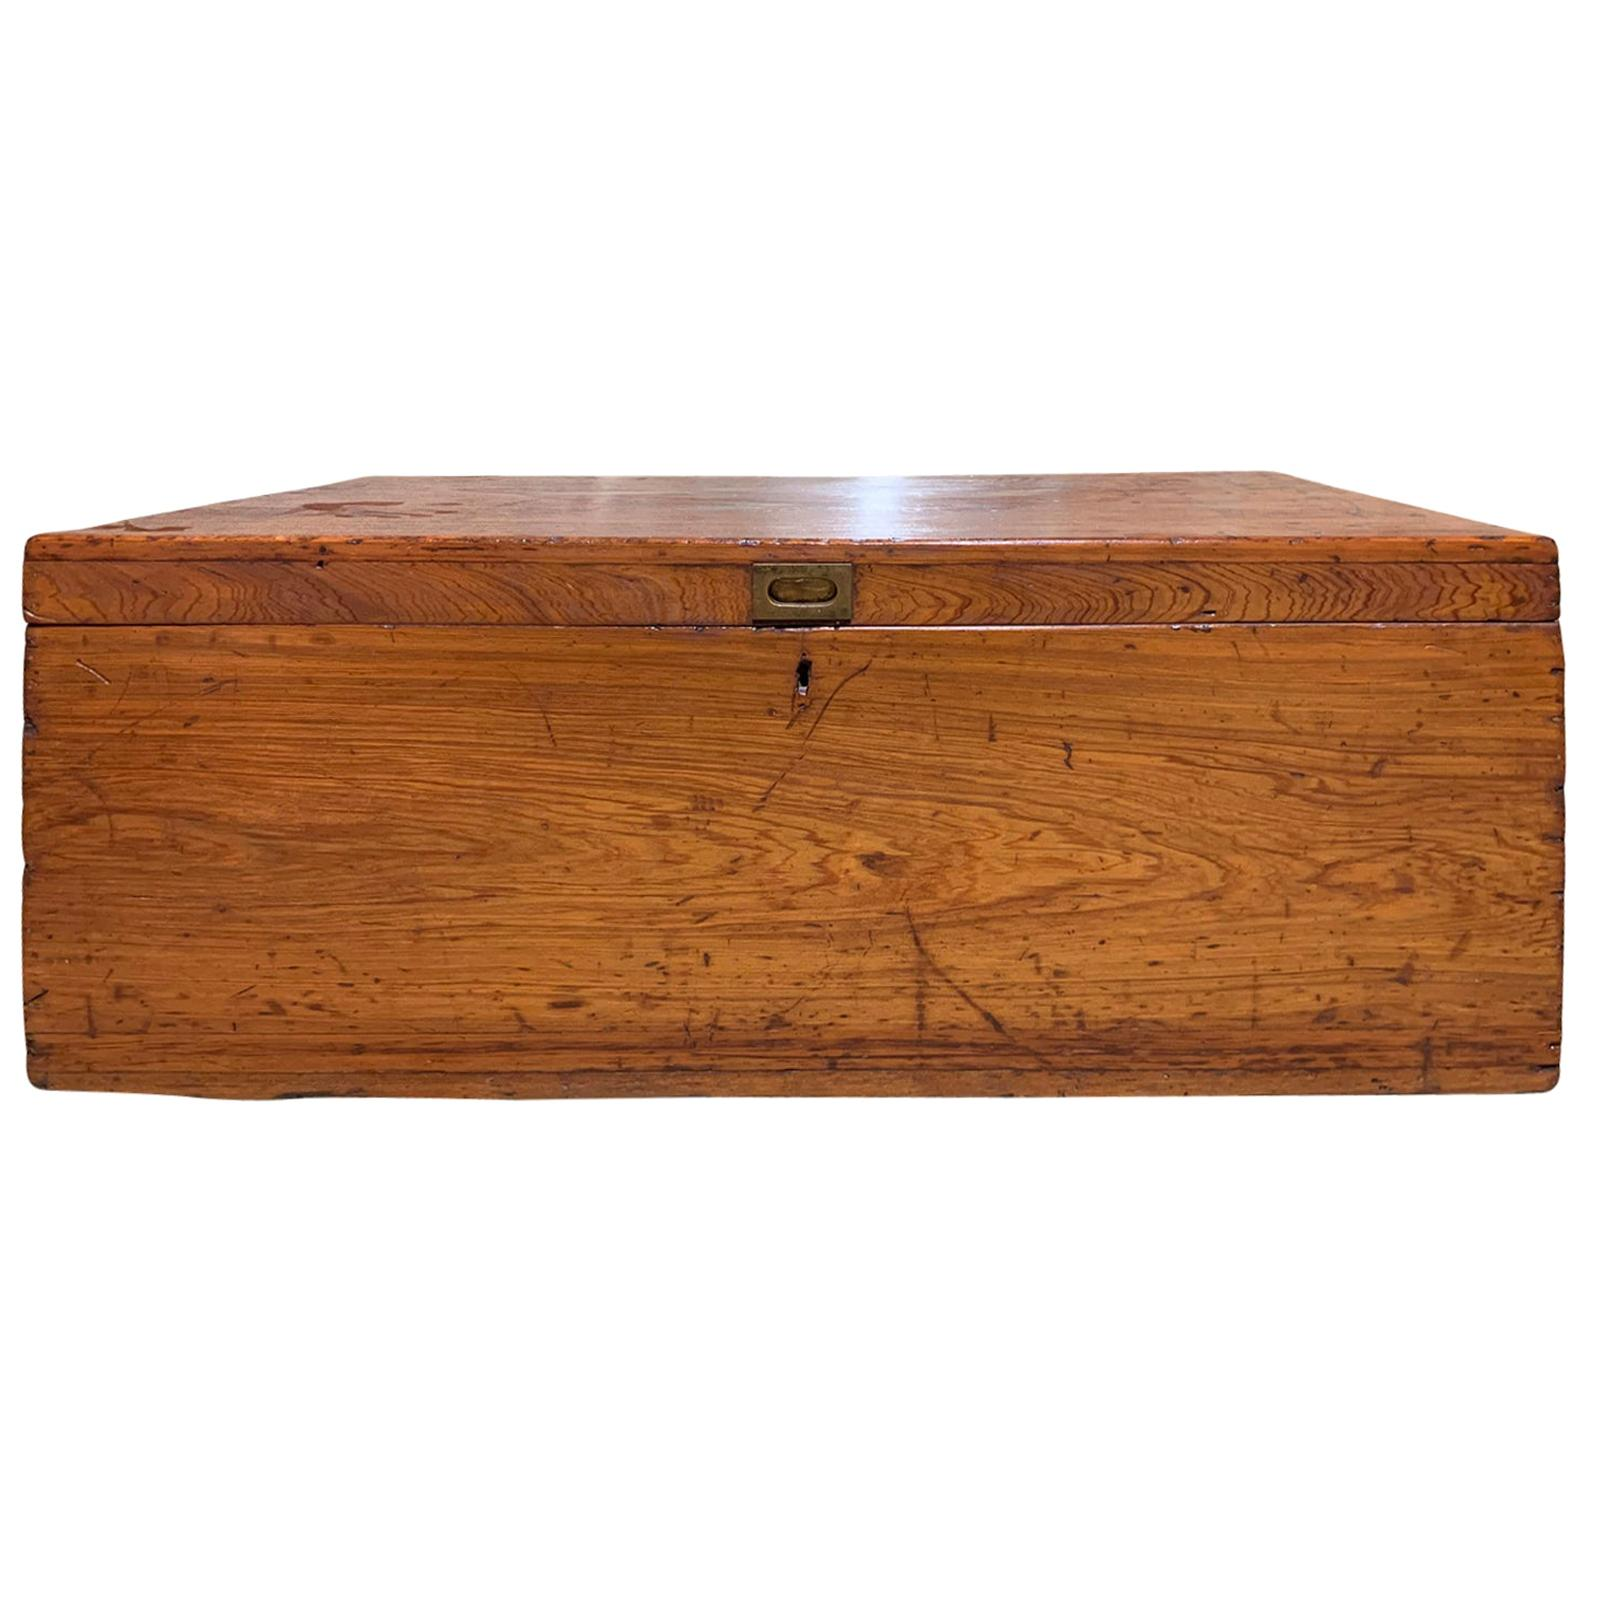 19th Century Wooden Trunk with Iron Handles, Large and Unusual Scale